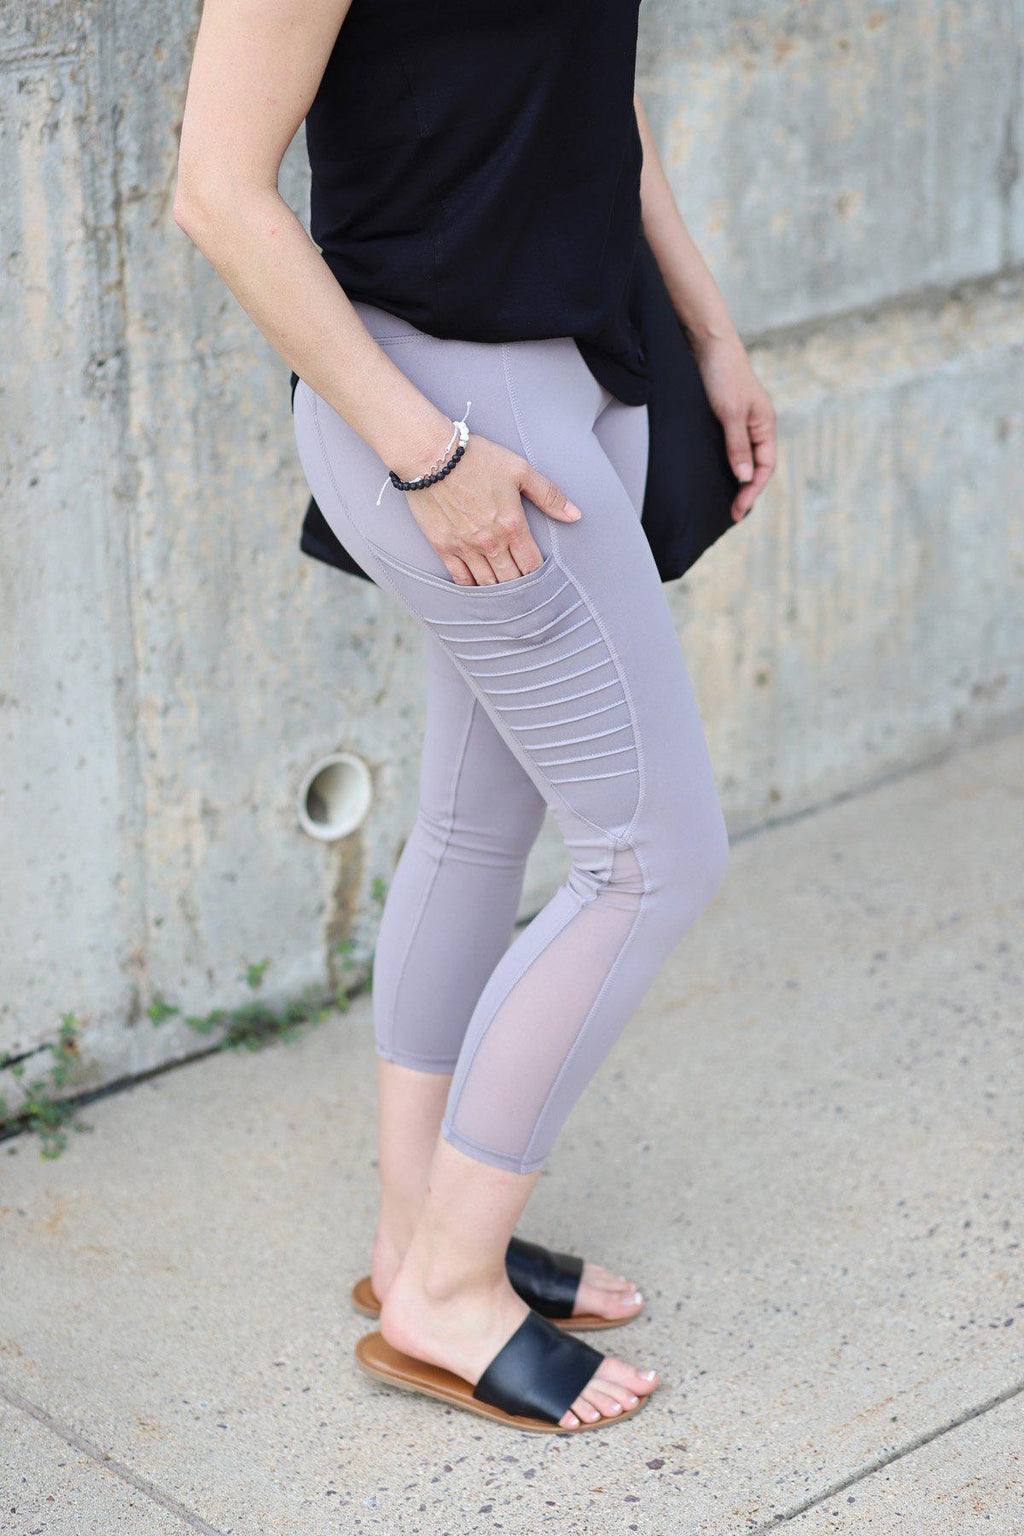 Kaity Capri Mauve Leggings - Gallery 512 Boutique